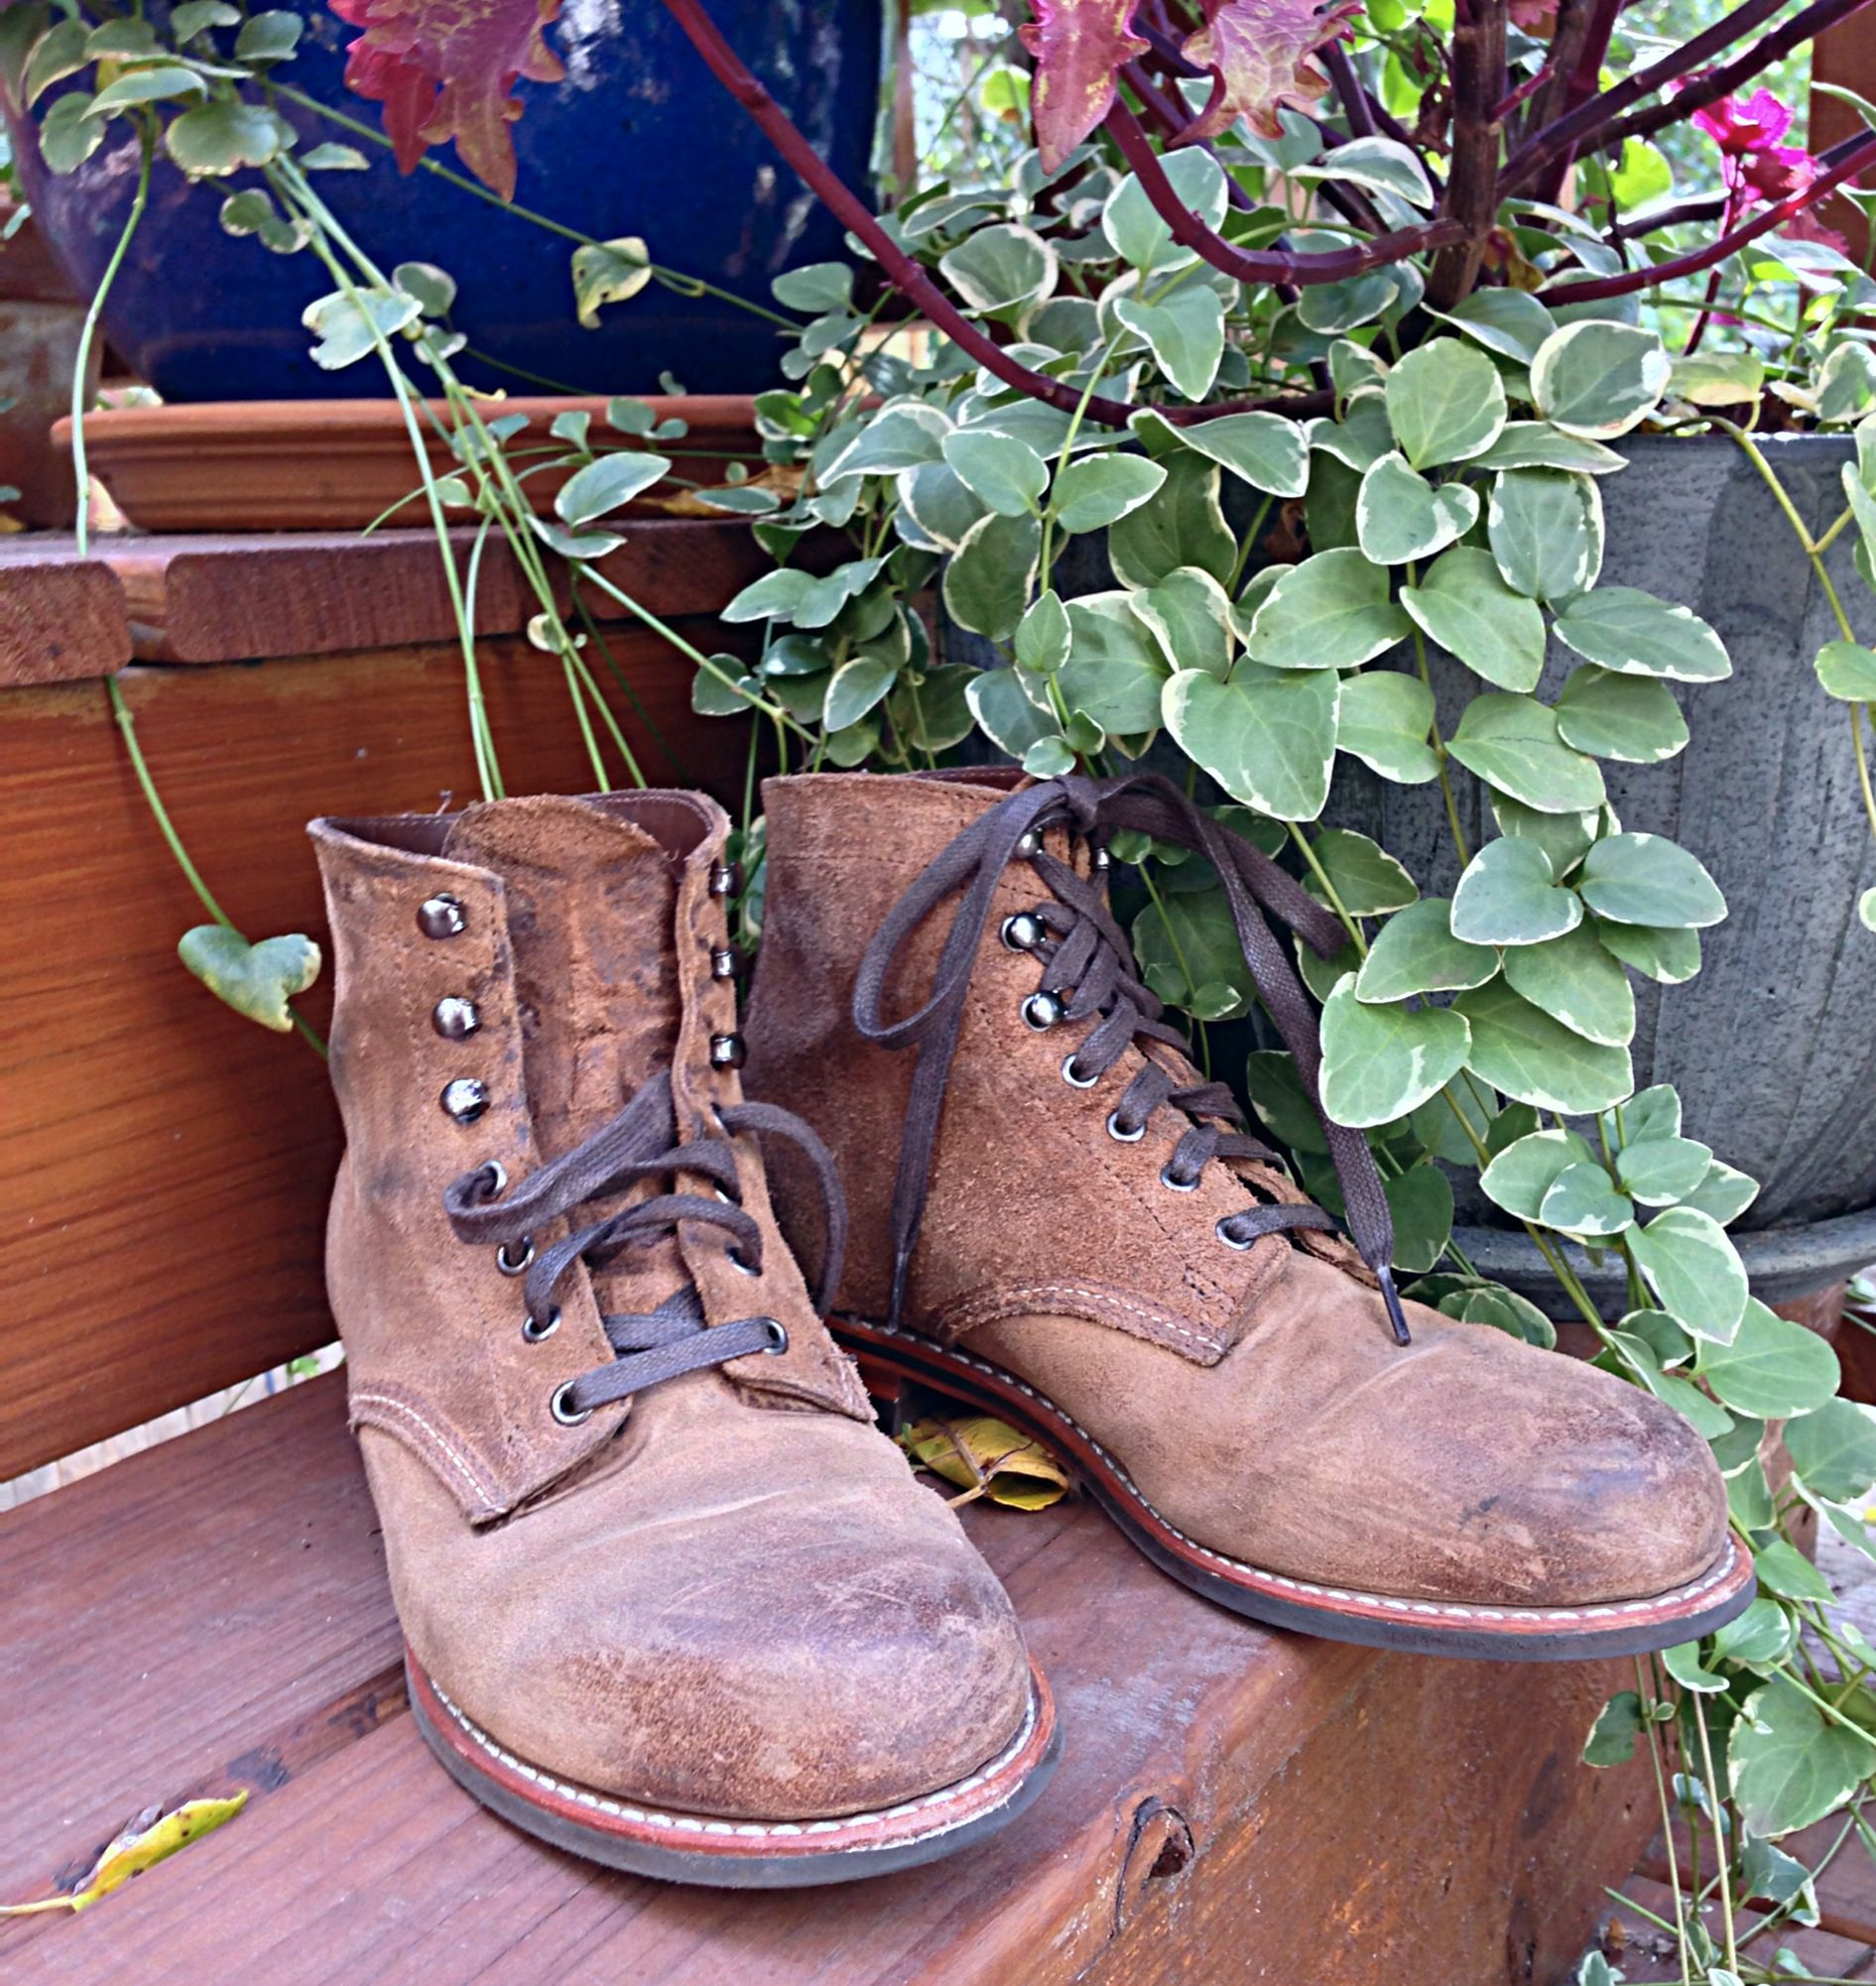 d1c7496987c Morley boots from Wolverine 1000 Mile #wolverine1k | Wolverine boots ...